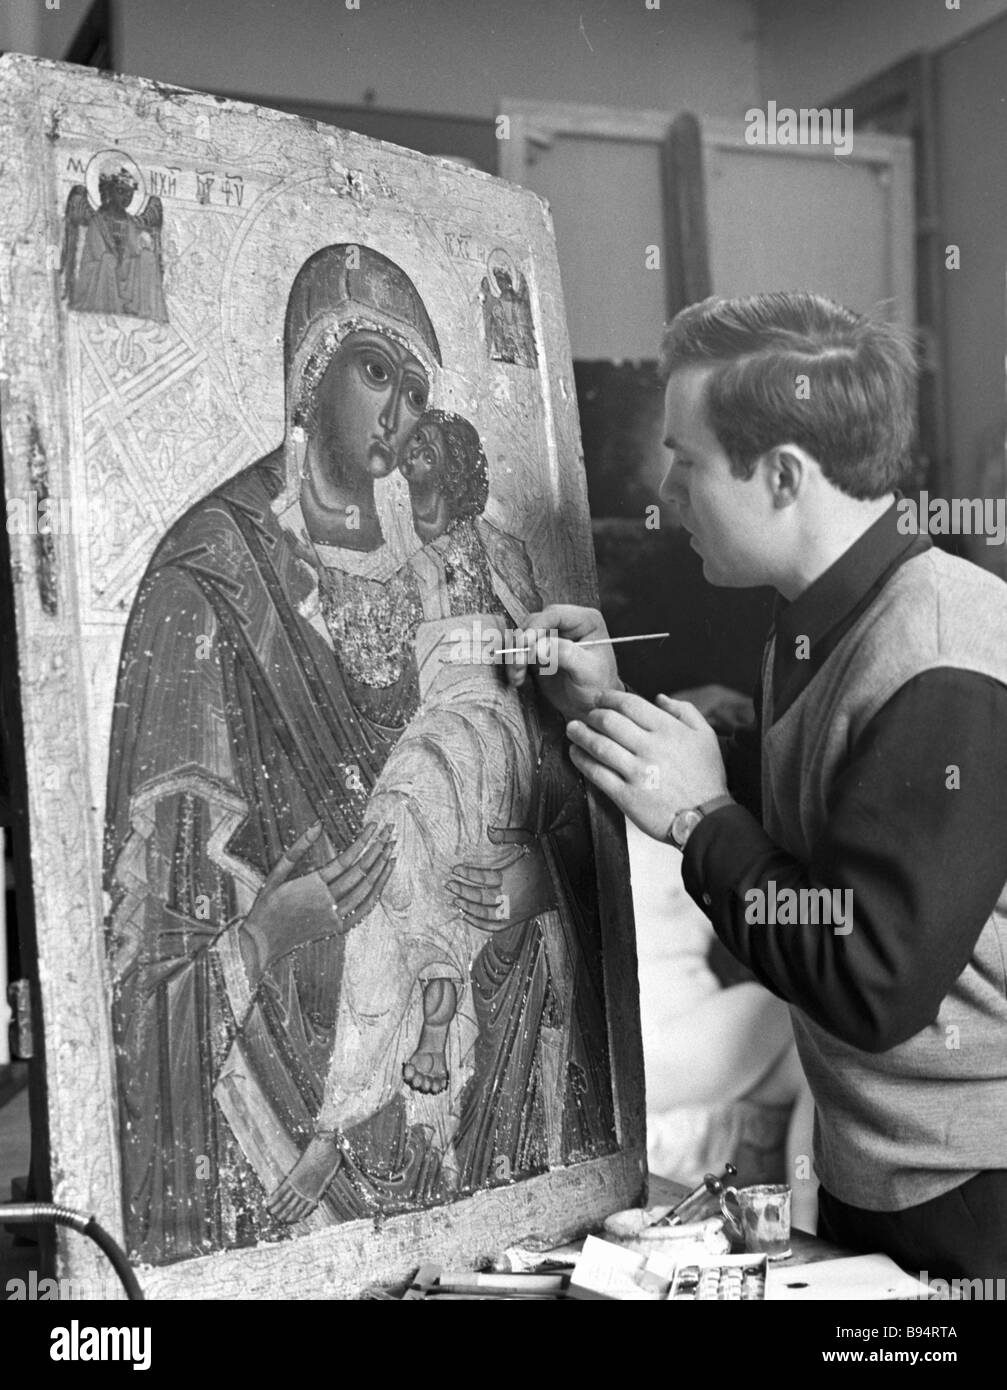 Artist restorer working on fifteenth century icon Tender Mercy which was found by an expedition to Volyn - Stock Image